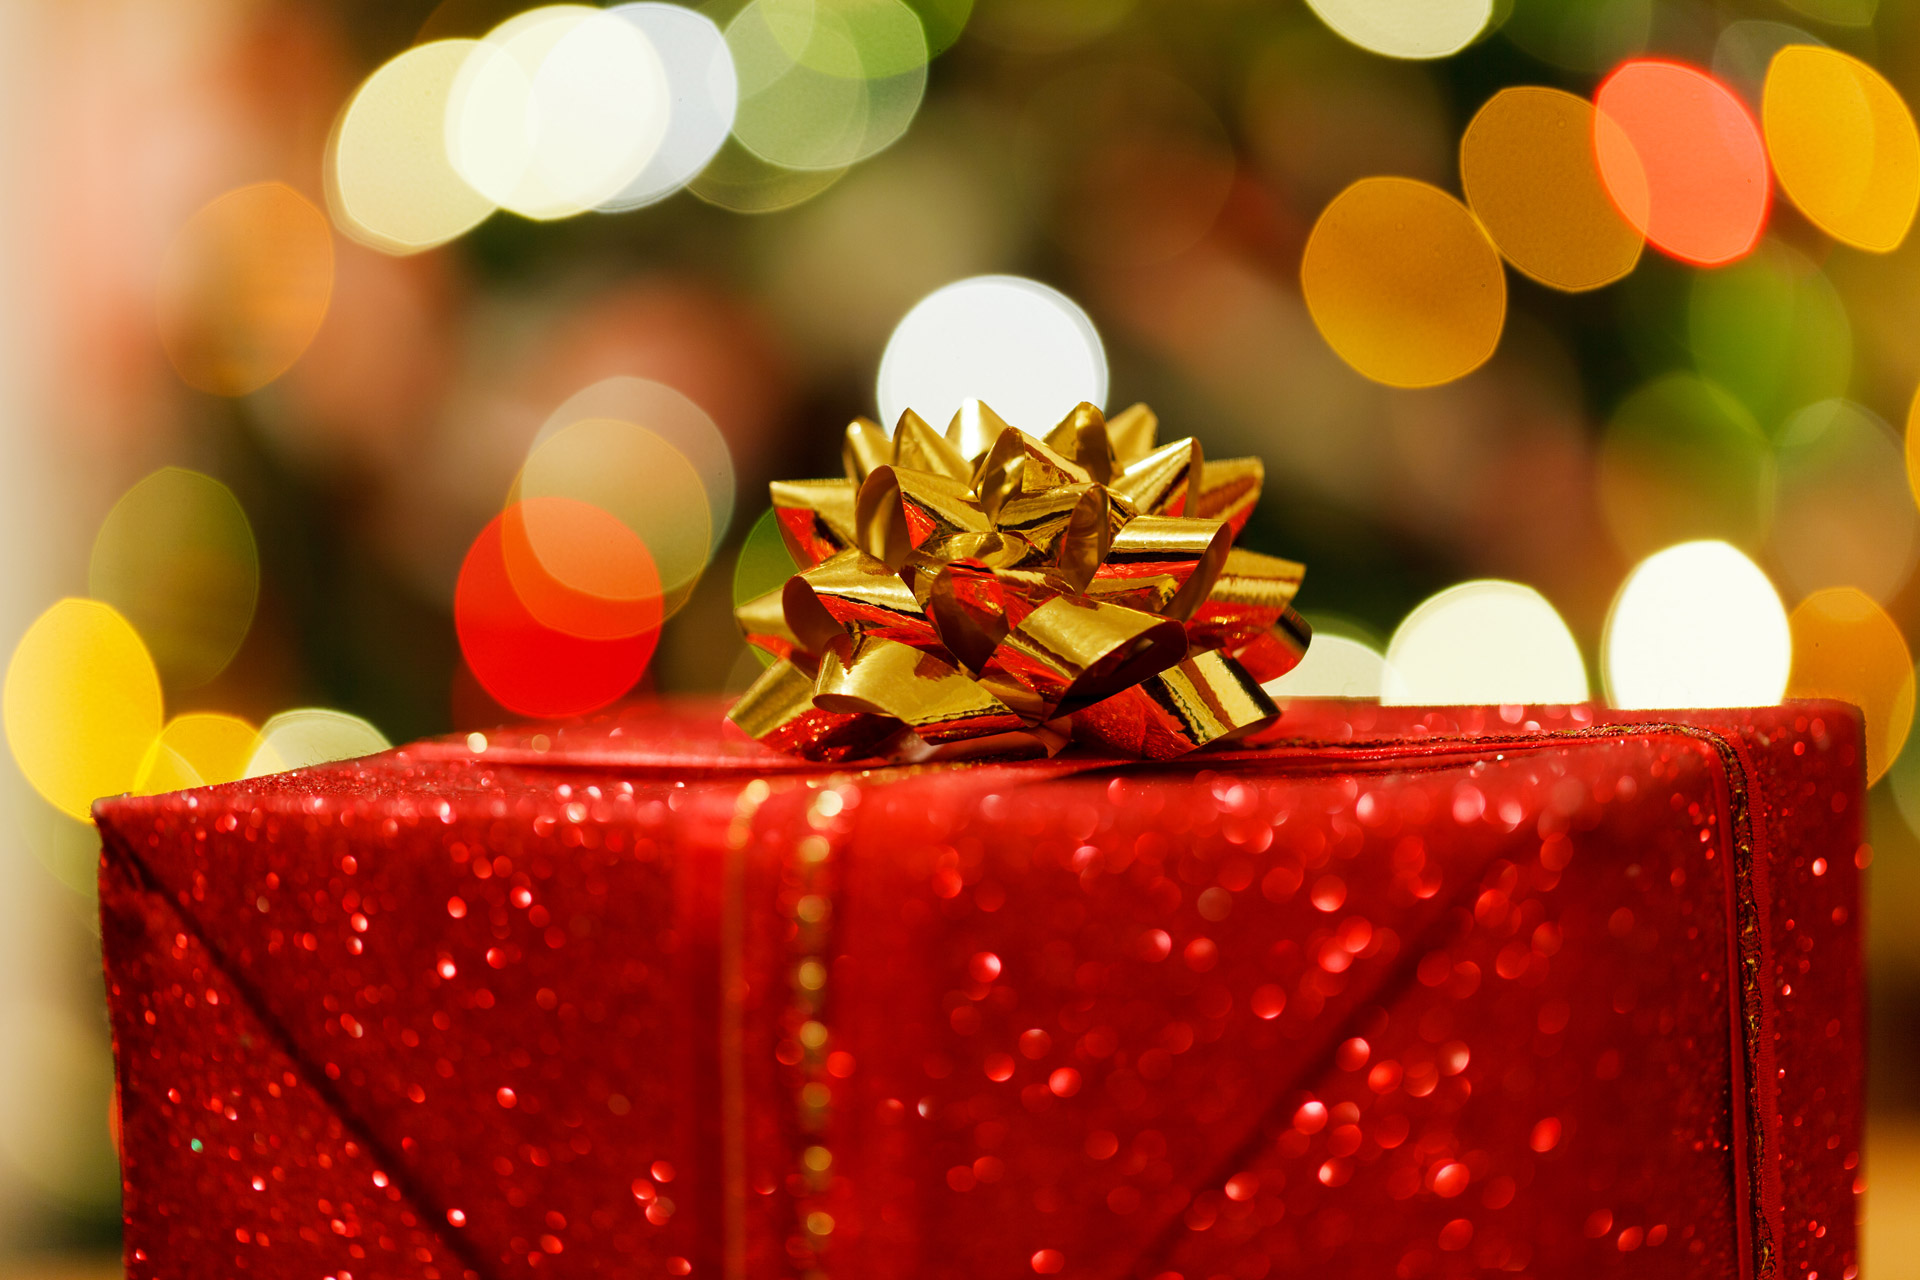 A Christmas Gift Free Stock Photo - Public Domain Pictures